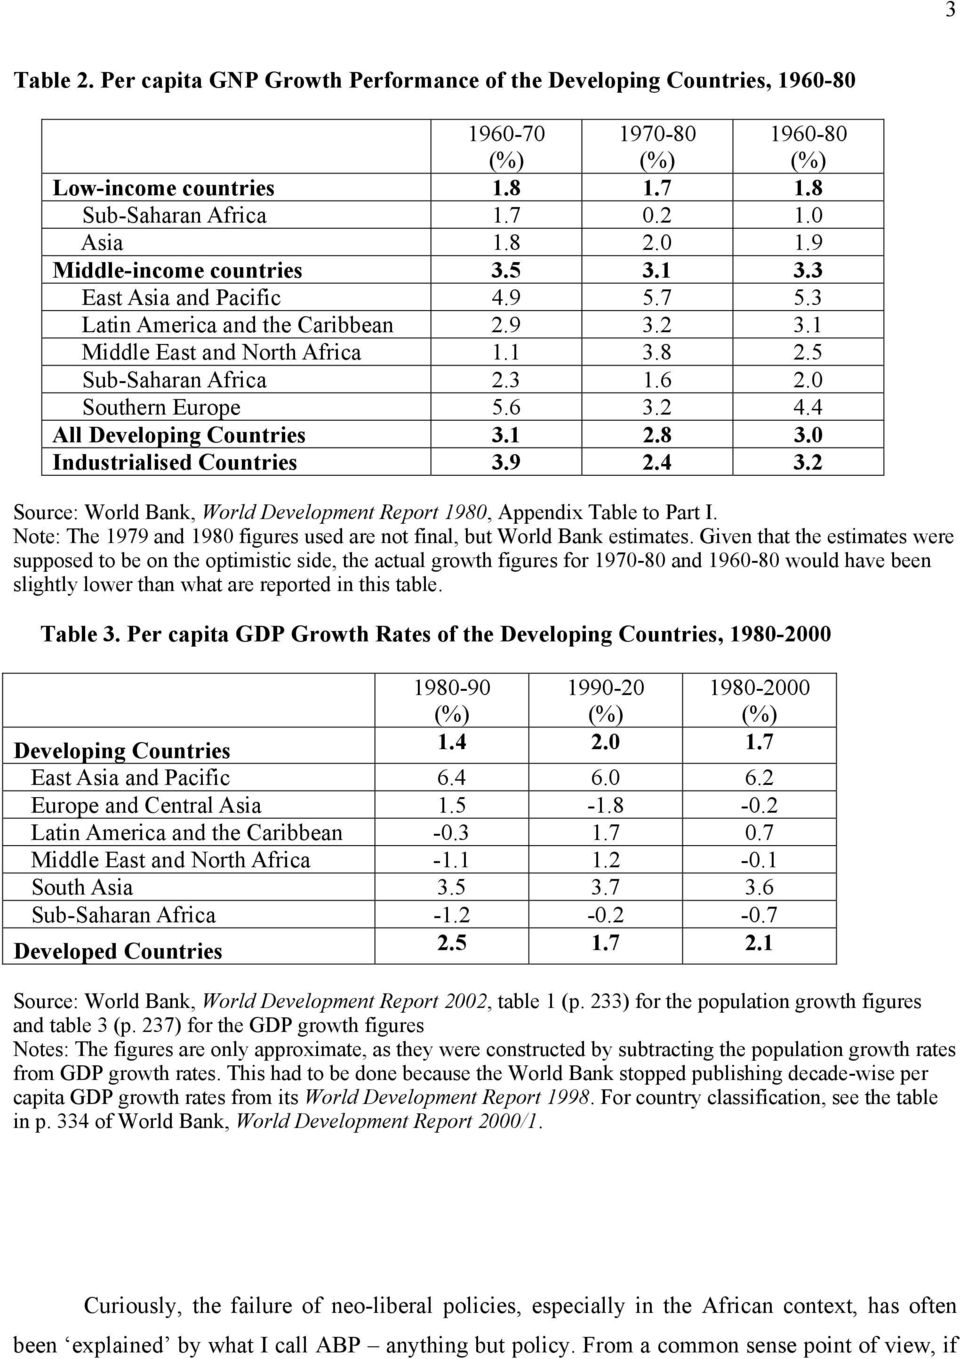 4 All Developing Countries 3.1 2.8 3.0 Industrialised Countries 3.9 2.4 3.2 Source: World Bank, World Development Report 1980, Appendix Table to Part I.